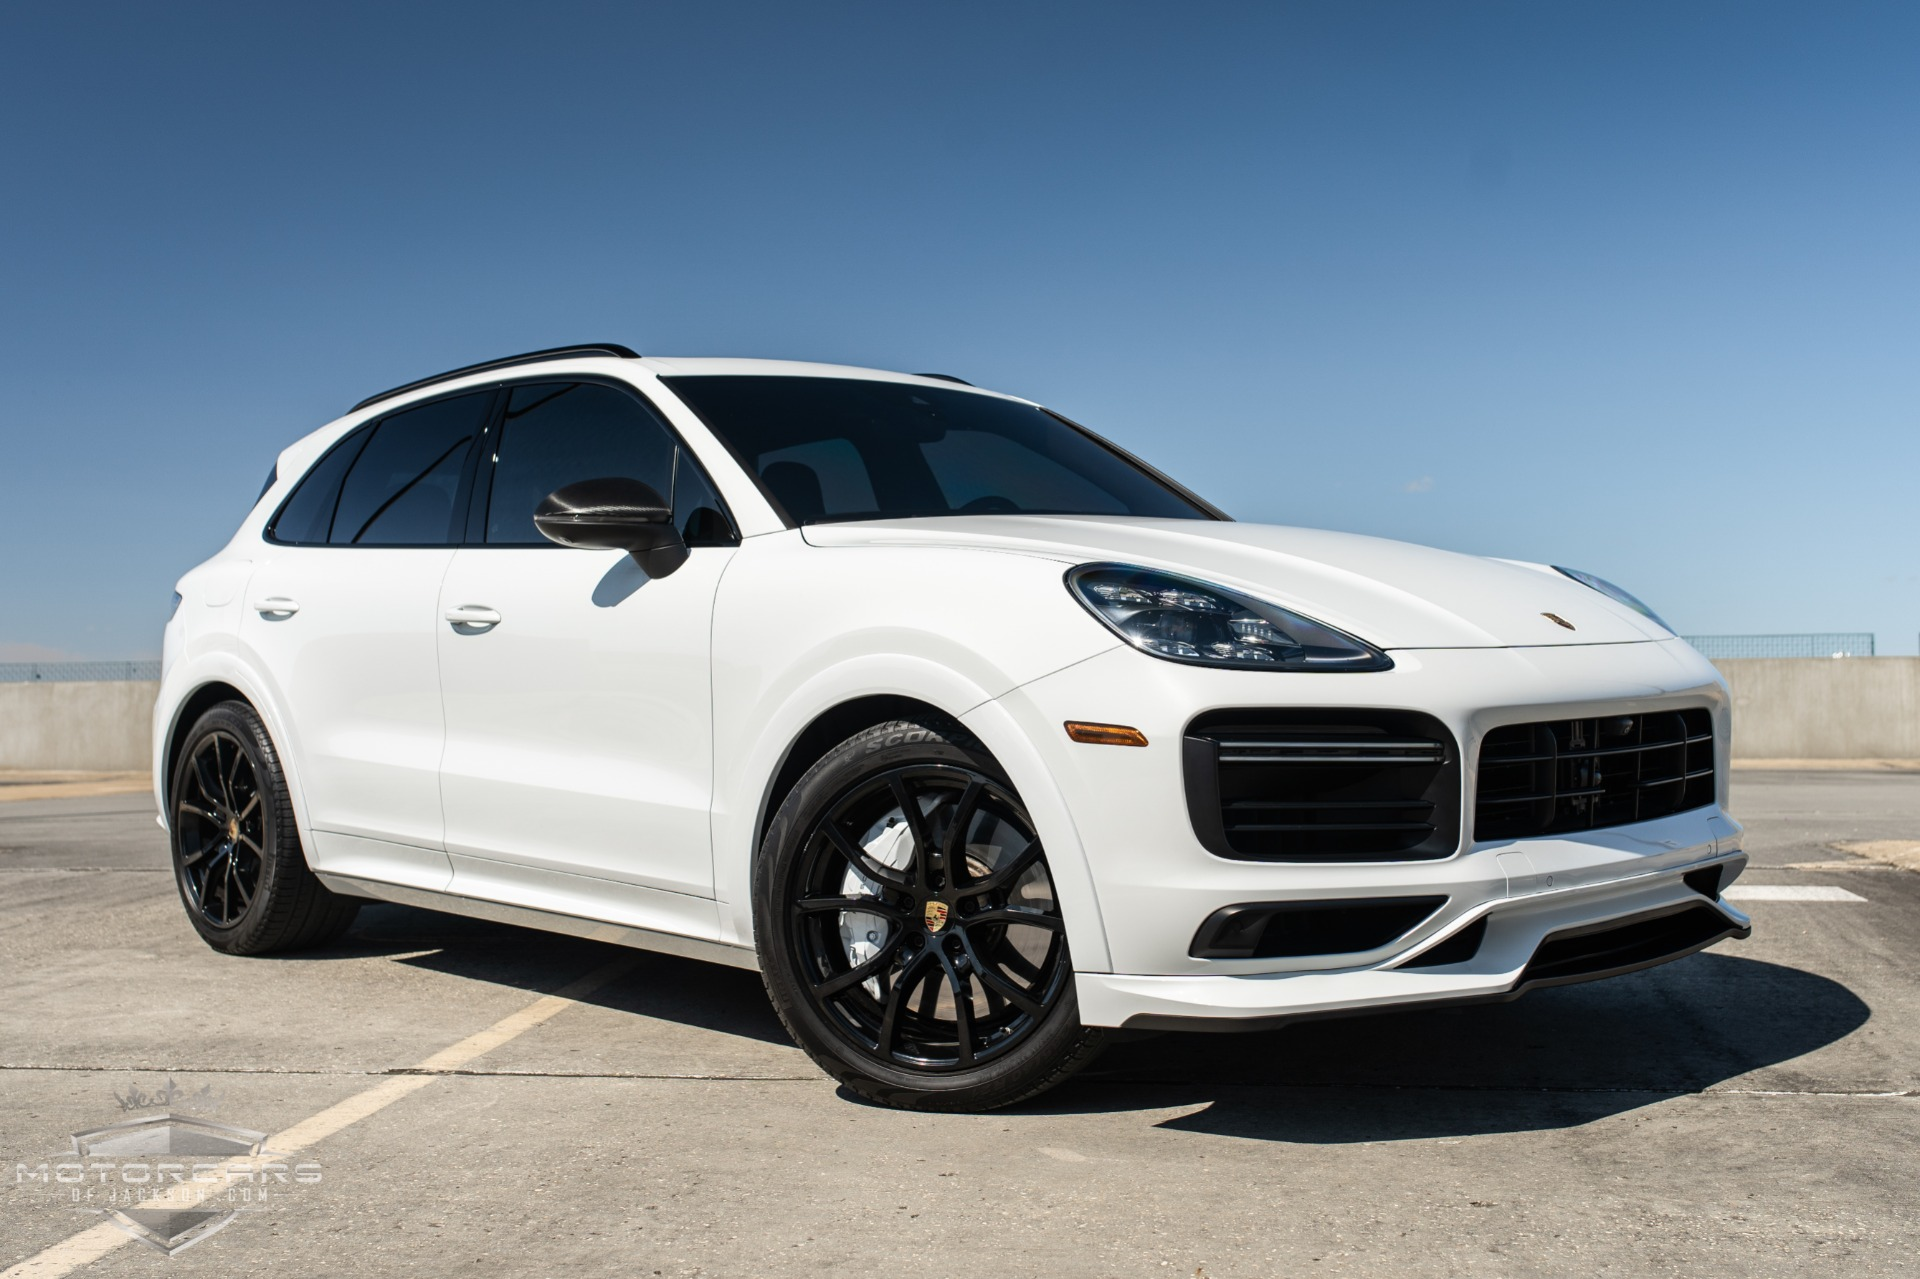 Used-2019-Porsche-Cayenne-Turbo-Jackson-MS